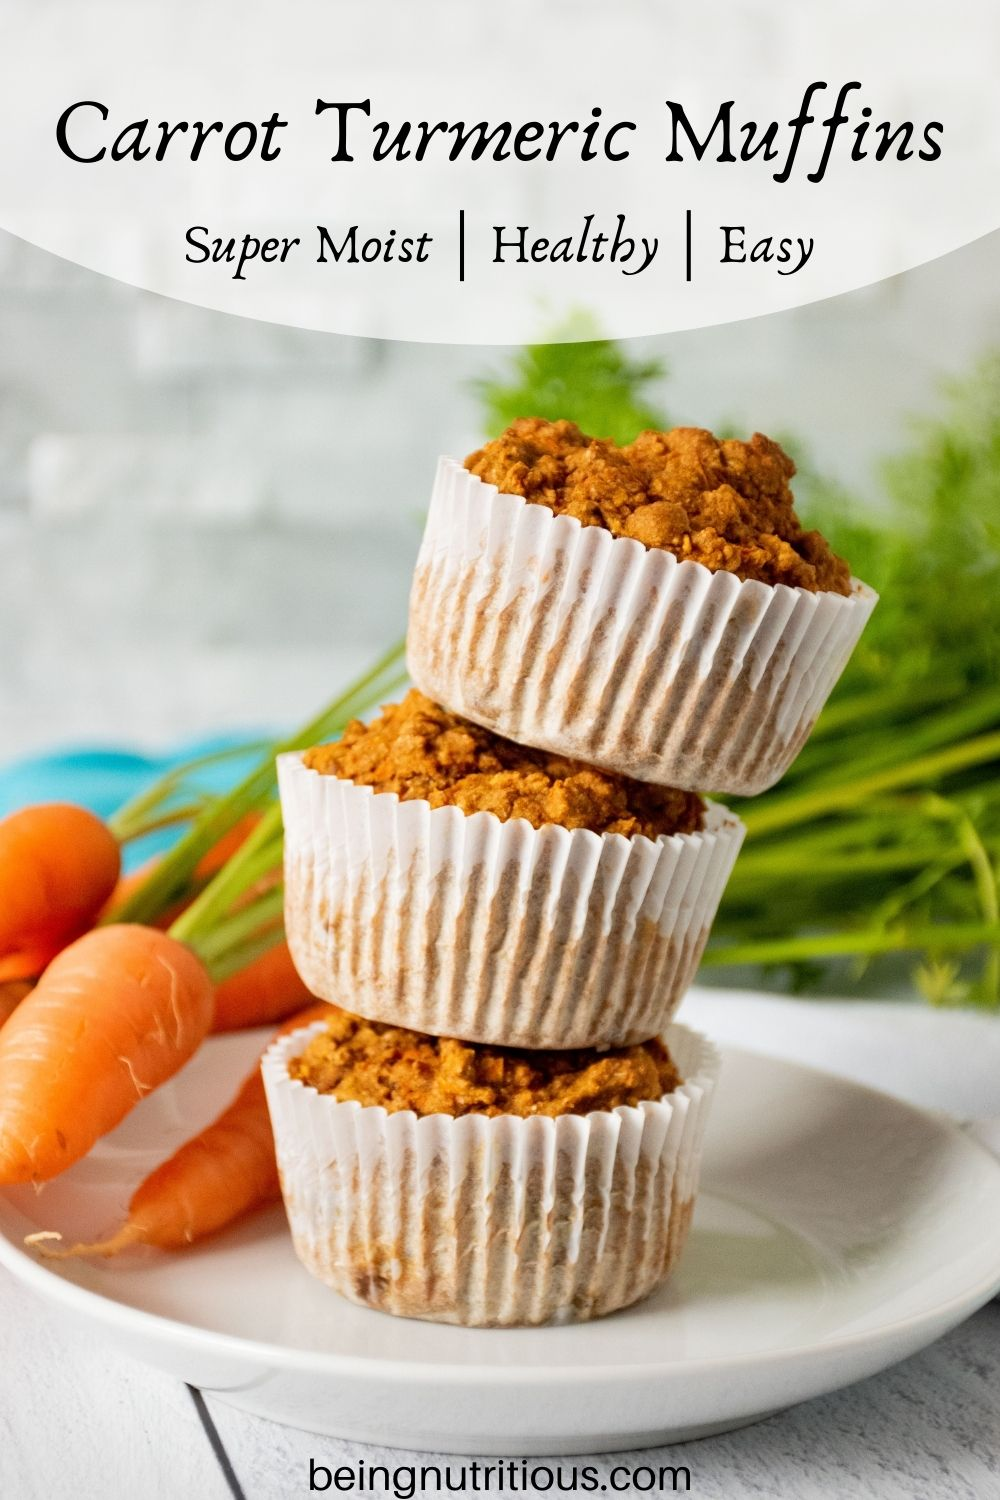 Stack of 3 muffins on a plate with fresh carrots in the background. Text overlay: Carrot Turmeric Muffins; super moist, healthy, easy.